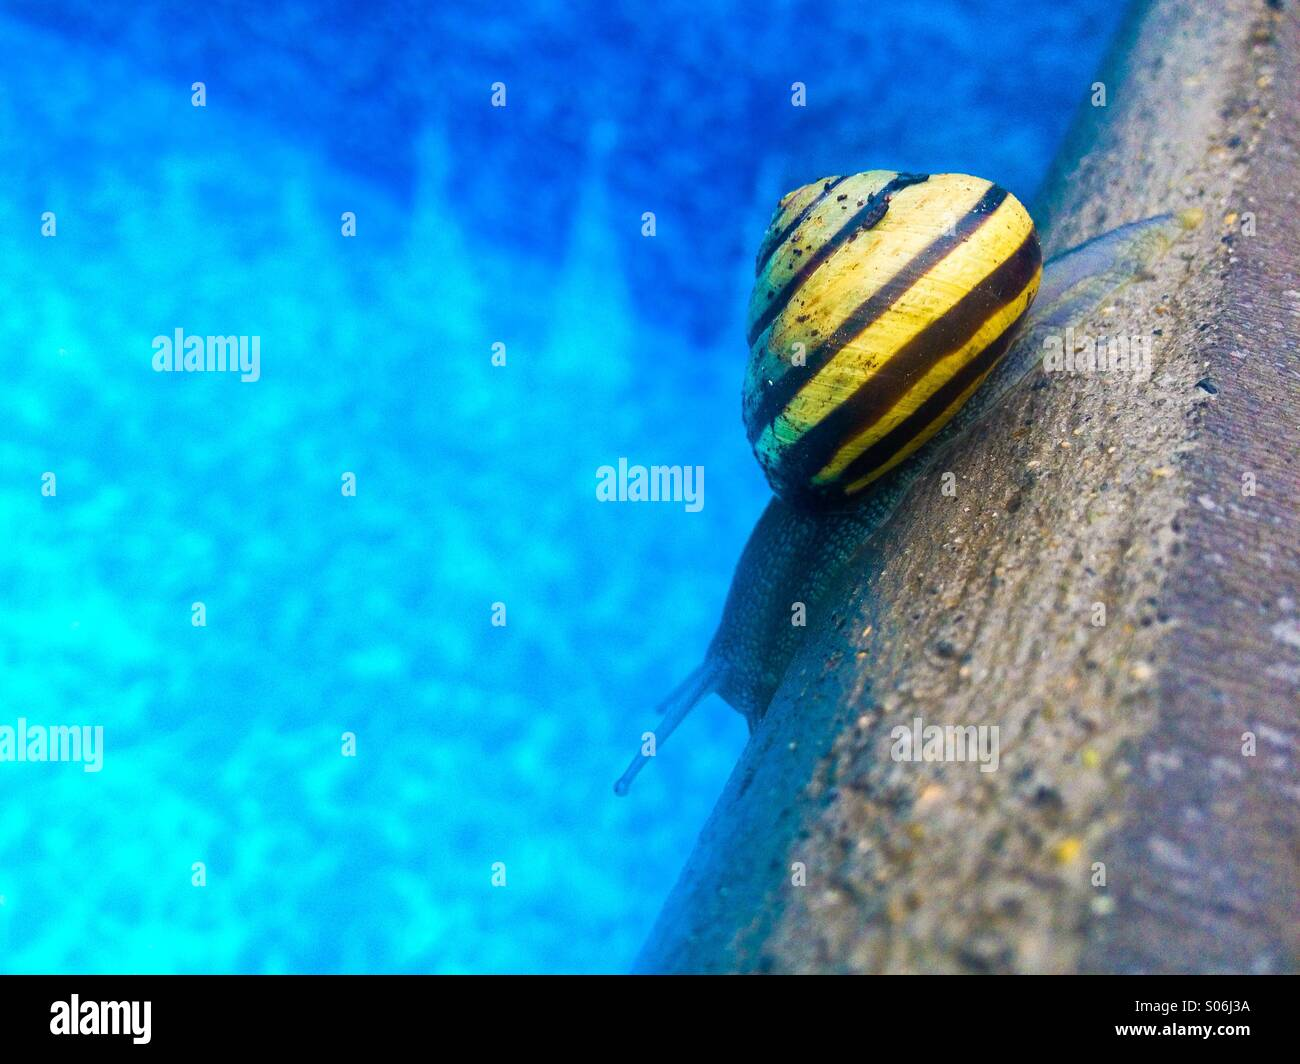 Yellow-striped snail inching its way alongside swimming pool's edge on a rainy day. - Stock Image